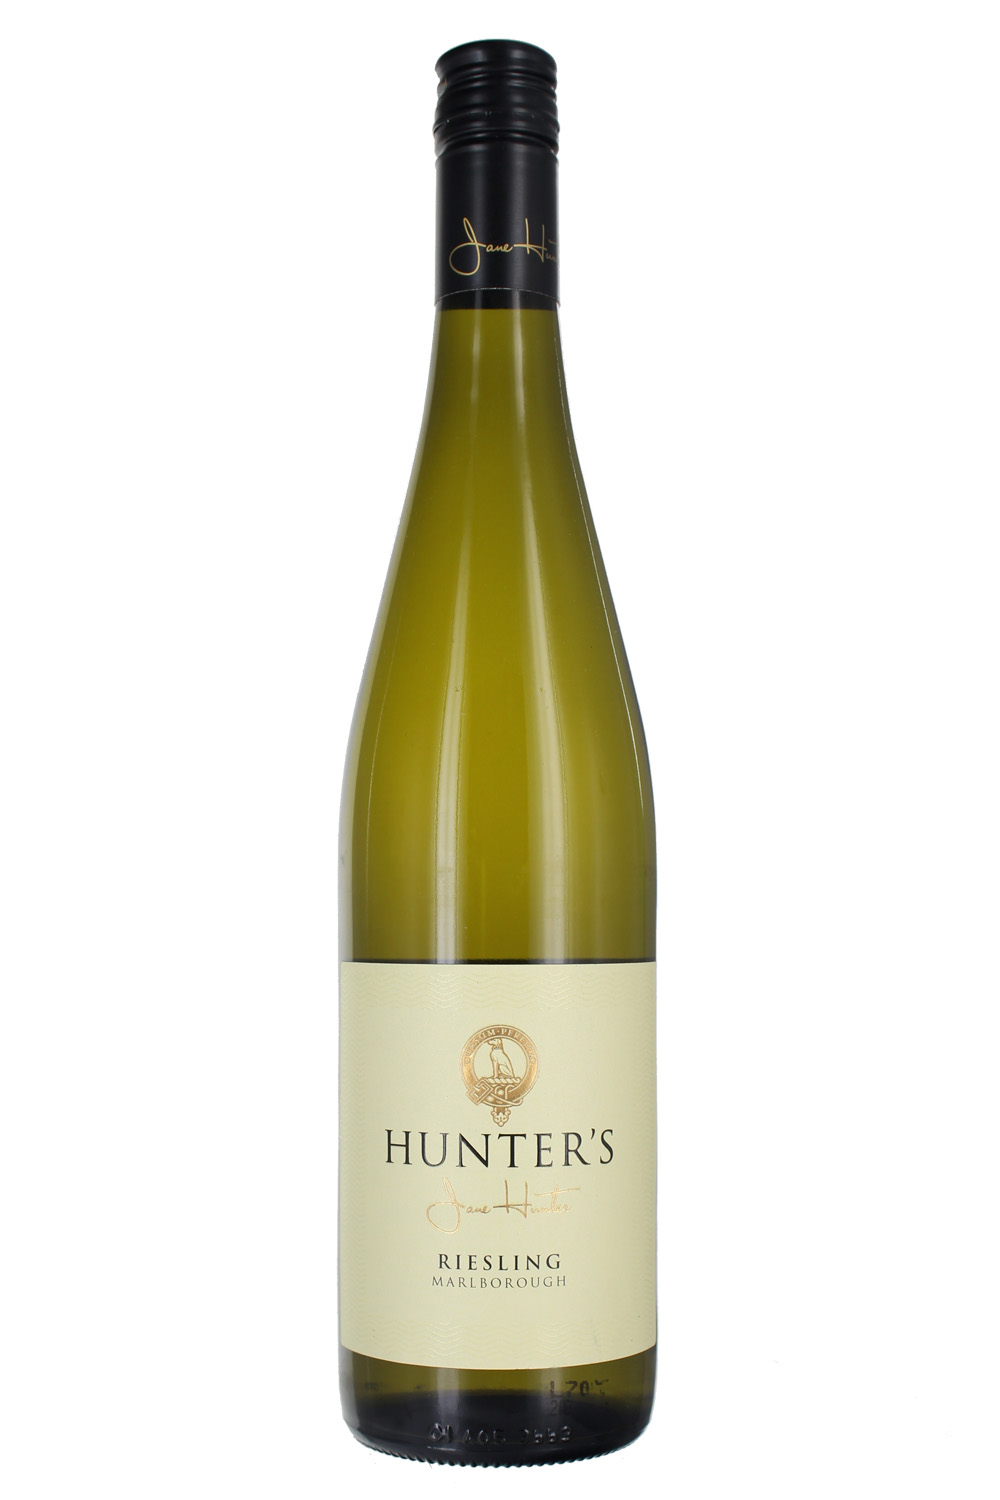 2018 Hunter's Riesling, Marlborough, New Zealand (Case)